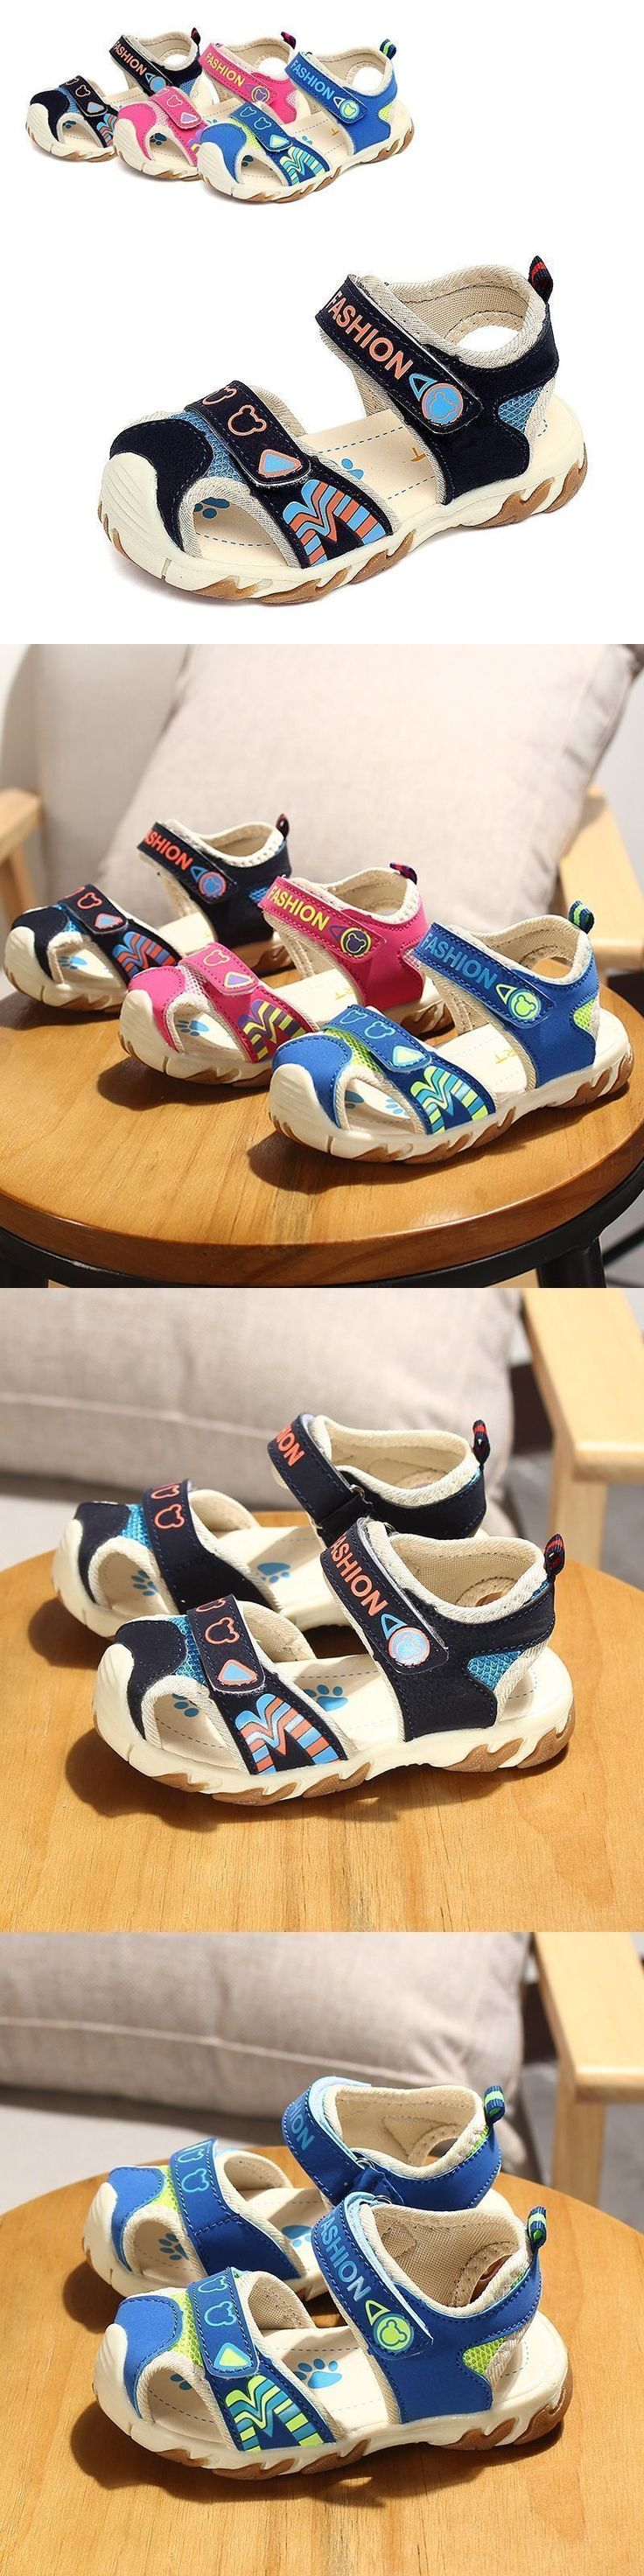 2017 Summer new boys and girls sandals baby children kids high quality soft bottom beach sandals Toddler shoes for 1-5 years old #babysandalsboy #babybottoms #toddlerbottoms #babygirlbottoms #babyboybottoms #babysandalsgirl